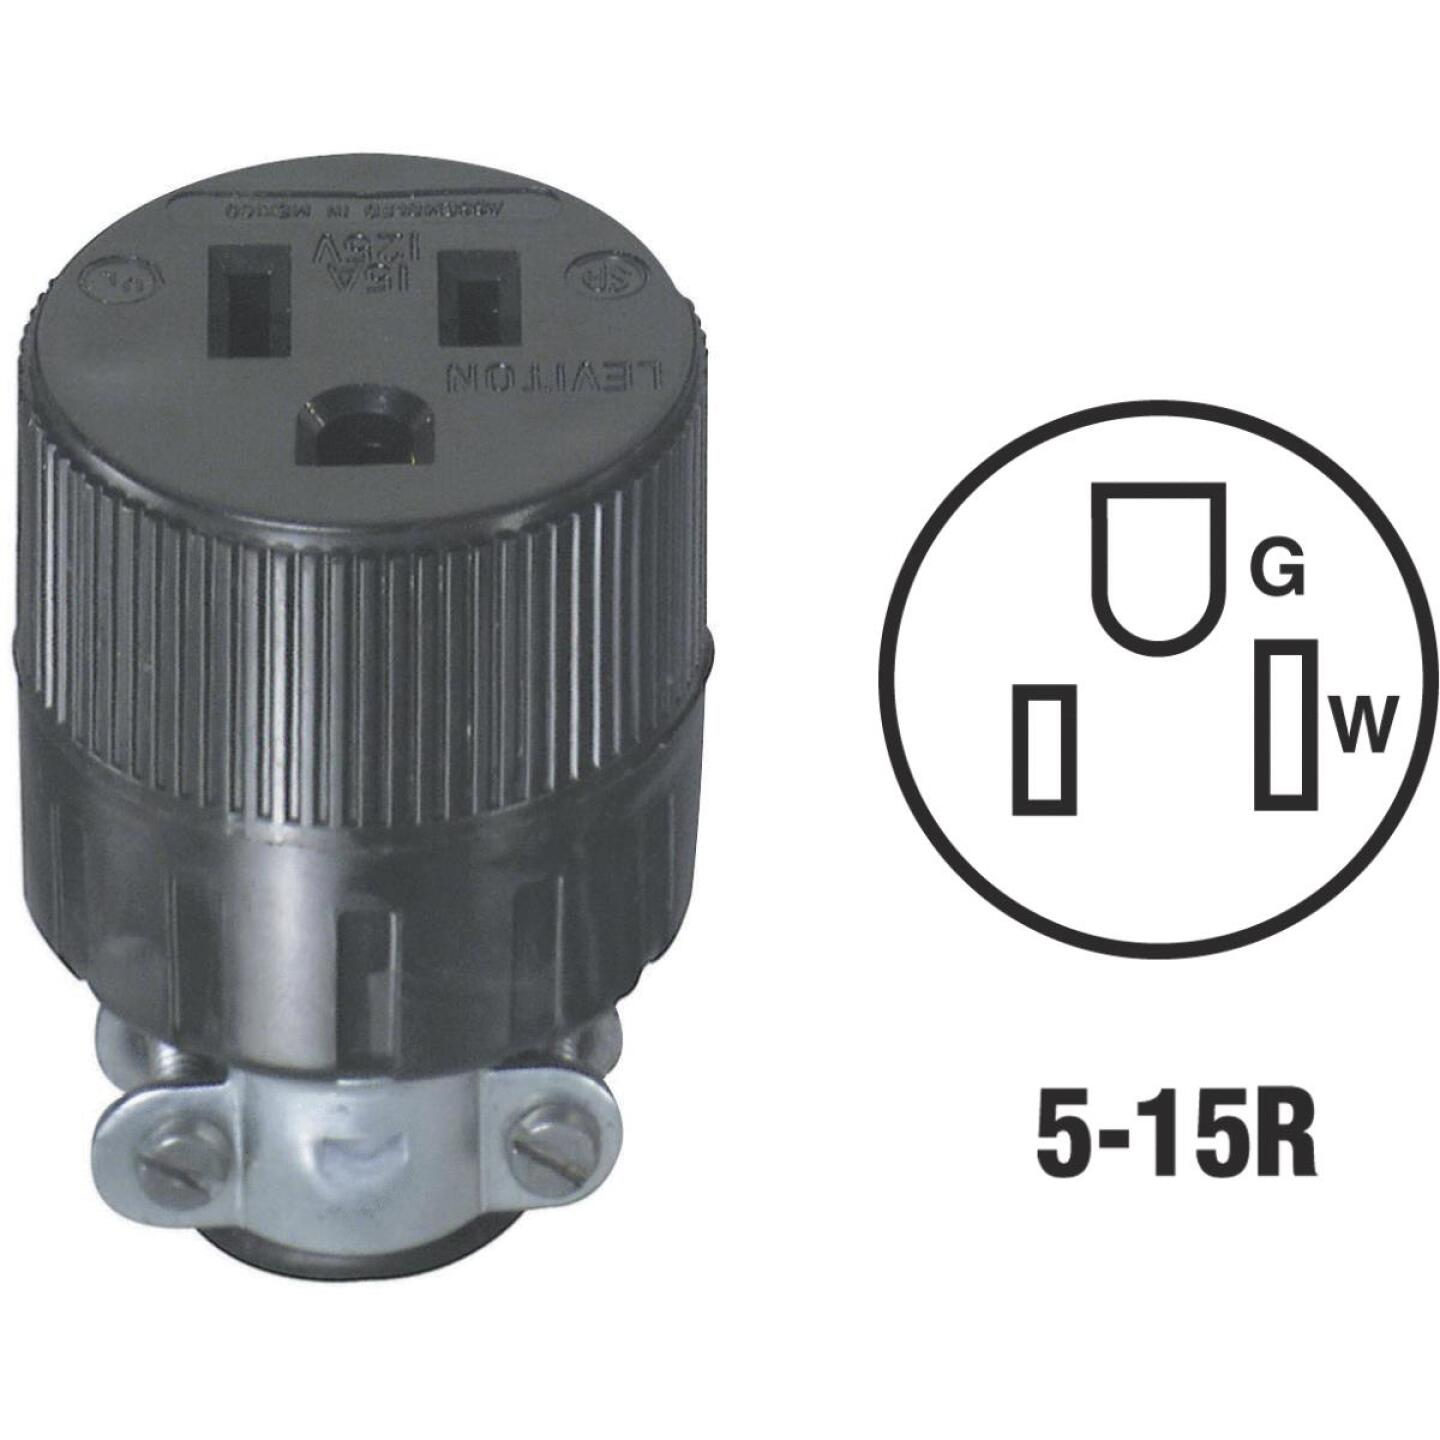 Do it 15A 125V 3-Wire 2-Pole Round Cord Connector Image 1